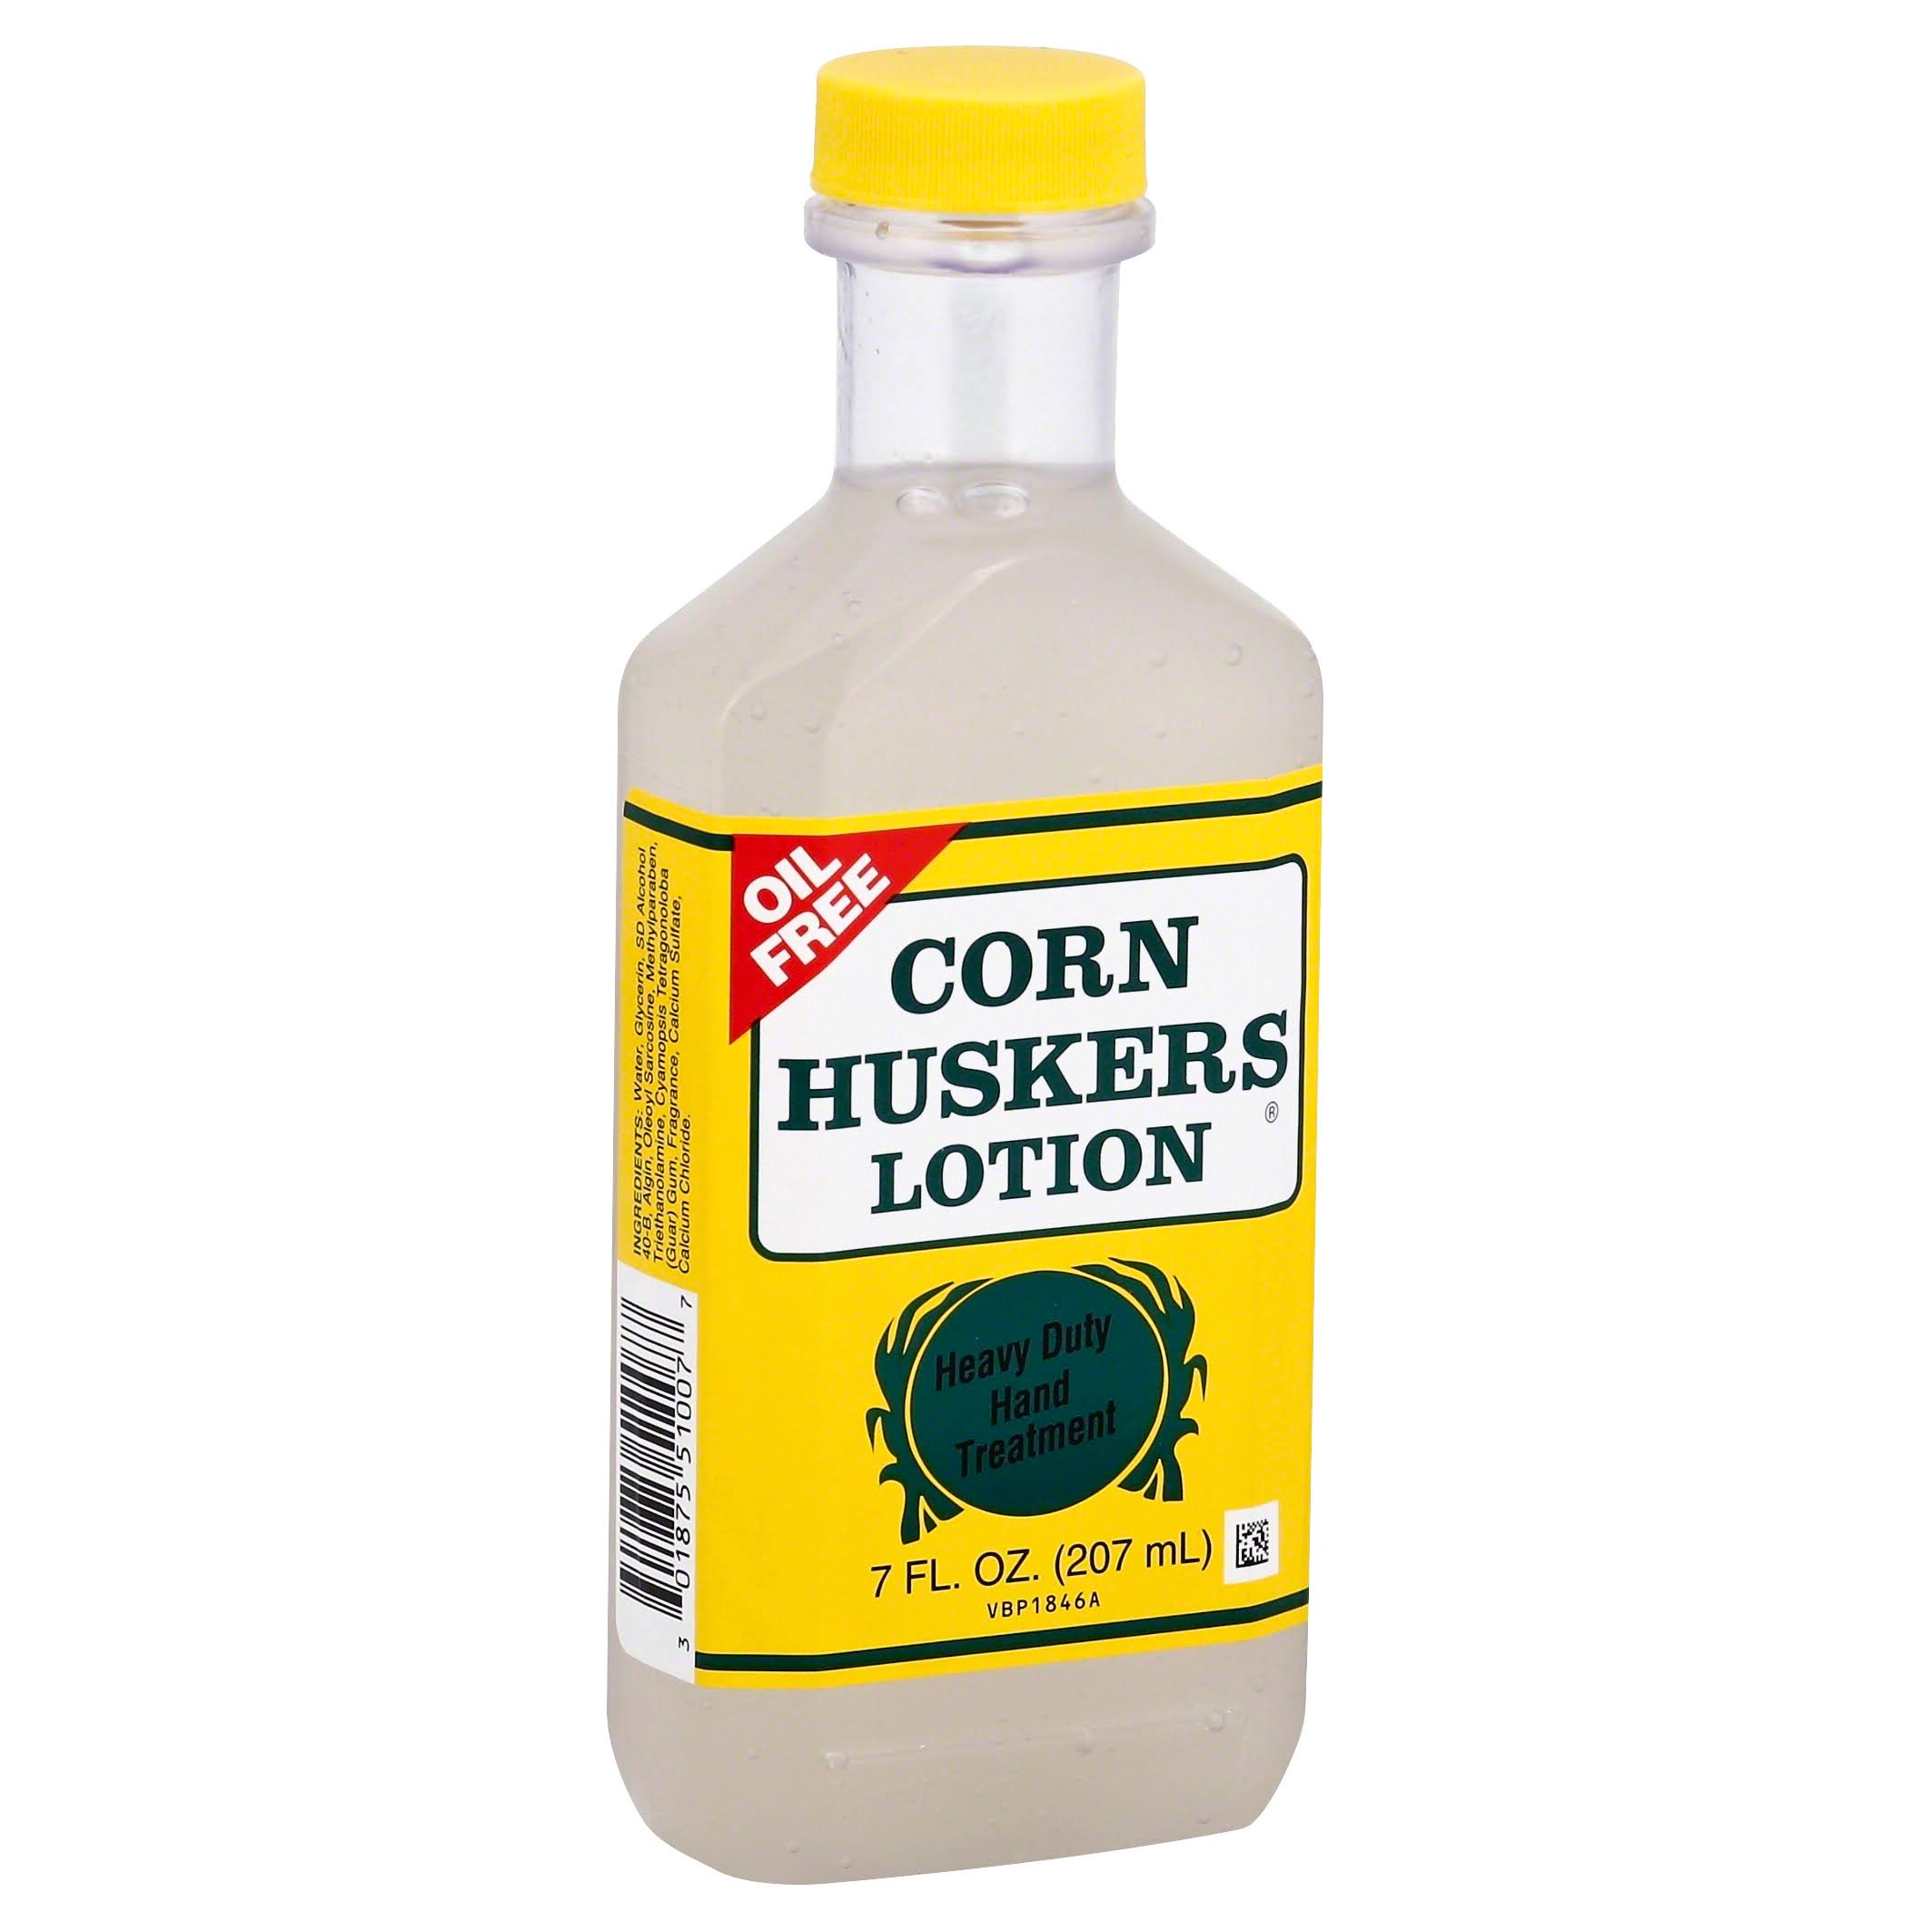 Corn Huskers Lotion Heavy Duty Hand Treatment Lotion - 7 oz